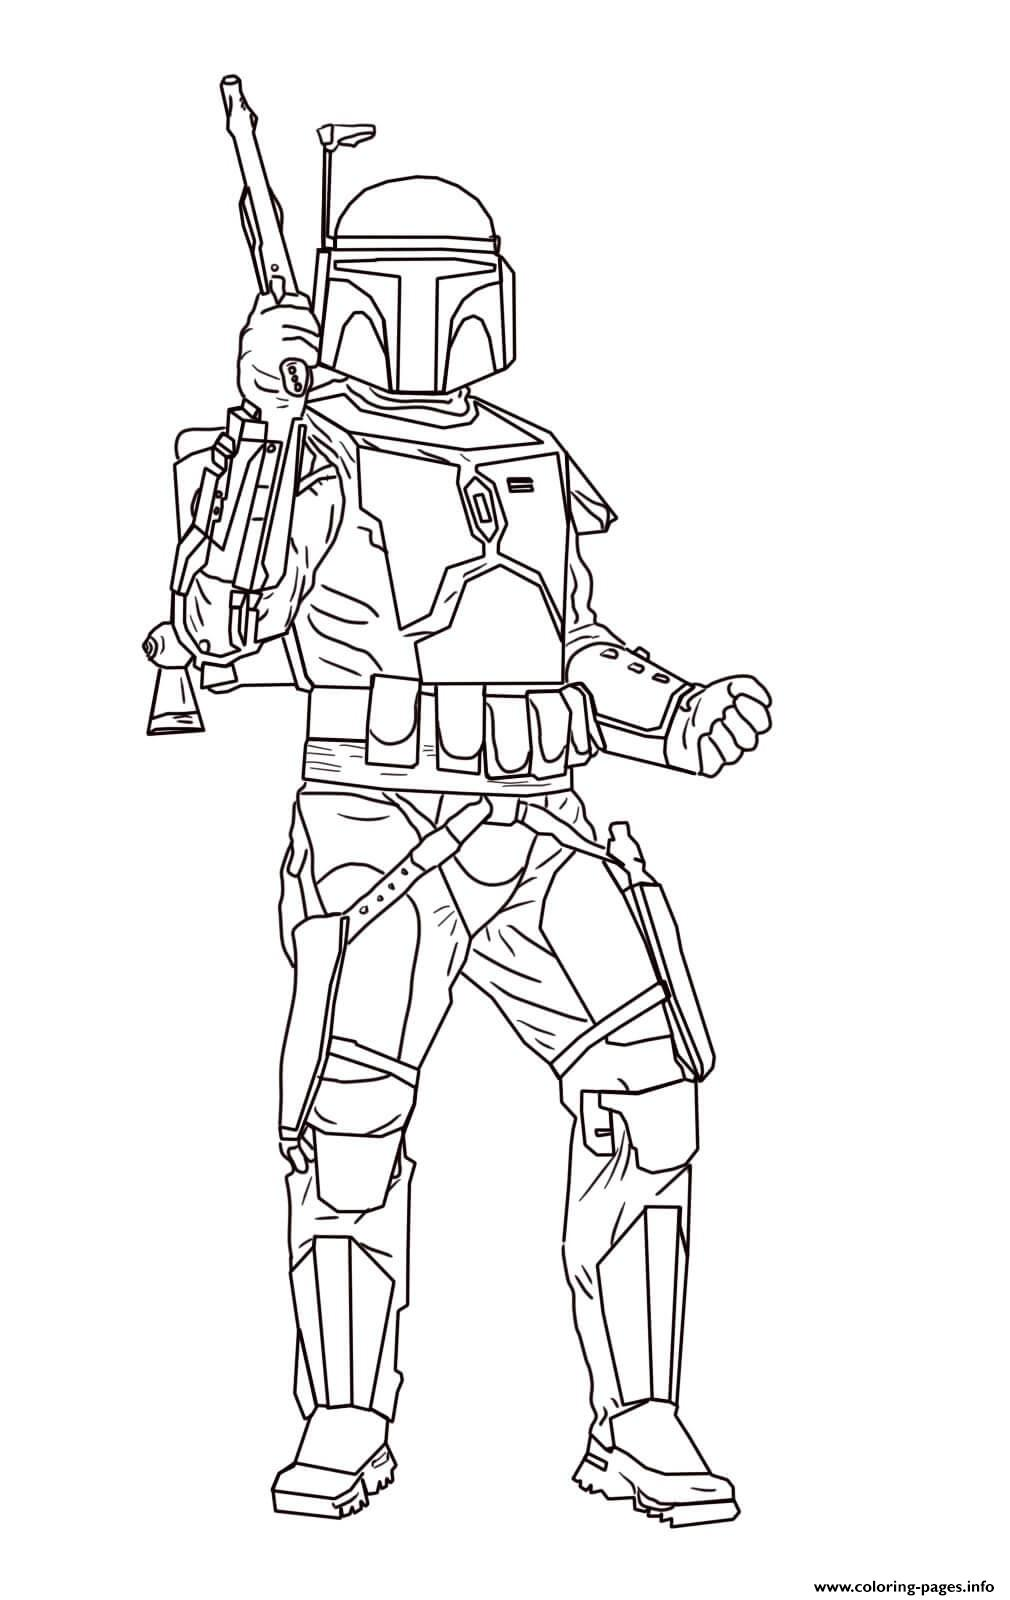 Jango Fett Star Wars Episode II Attack Of The Clones coloring pages